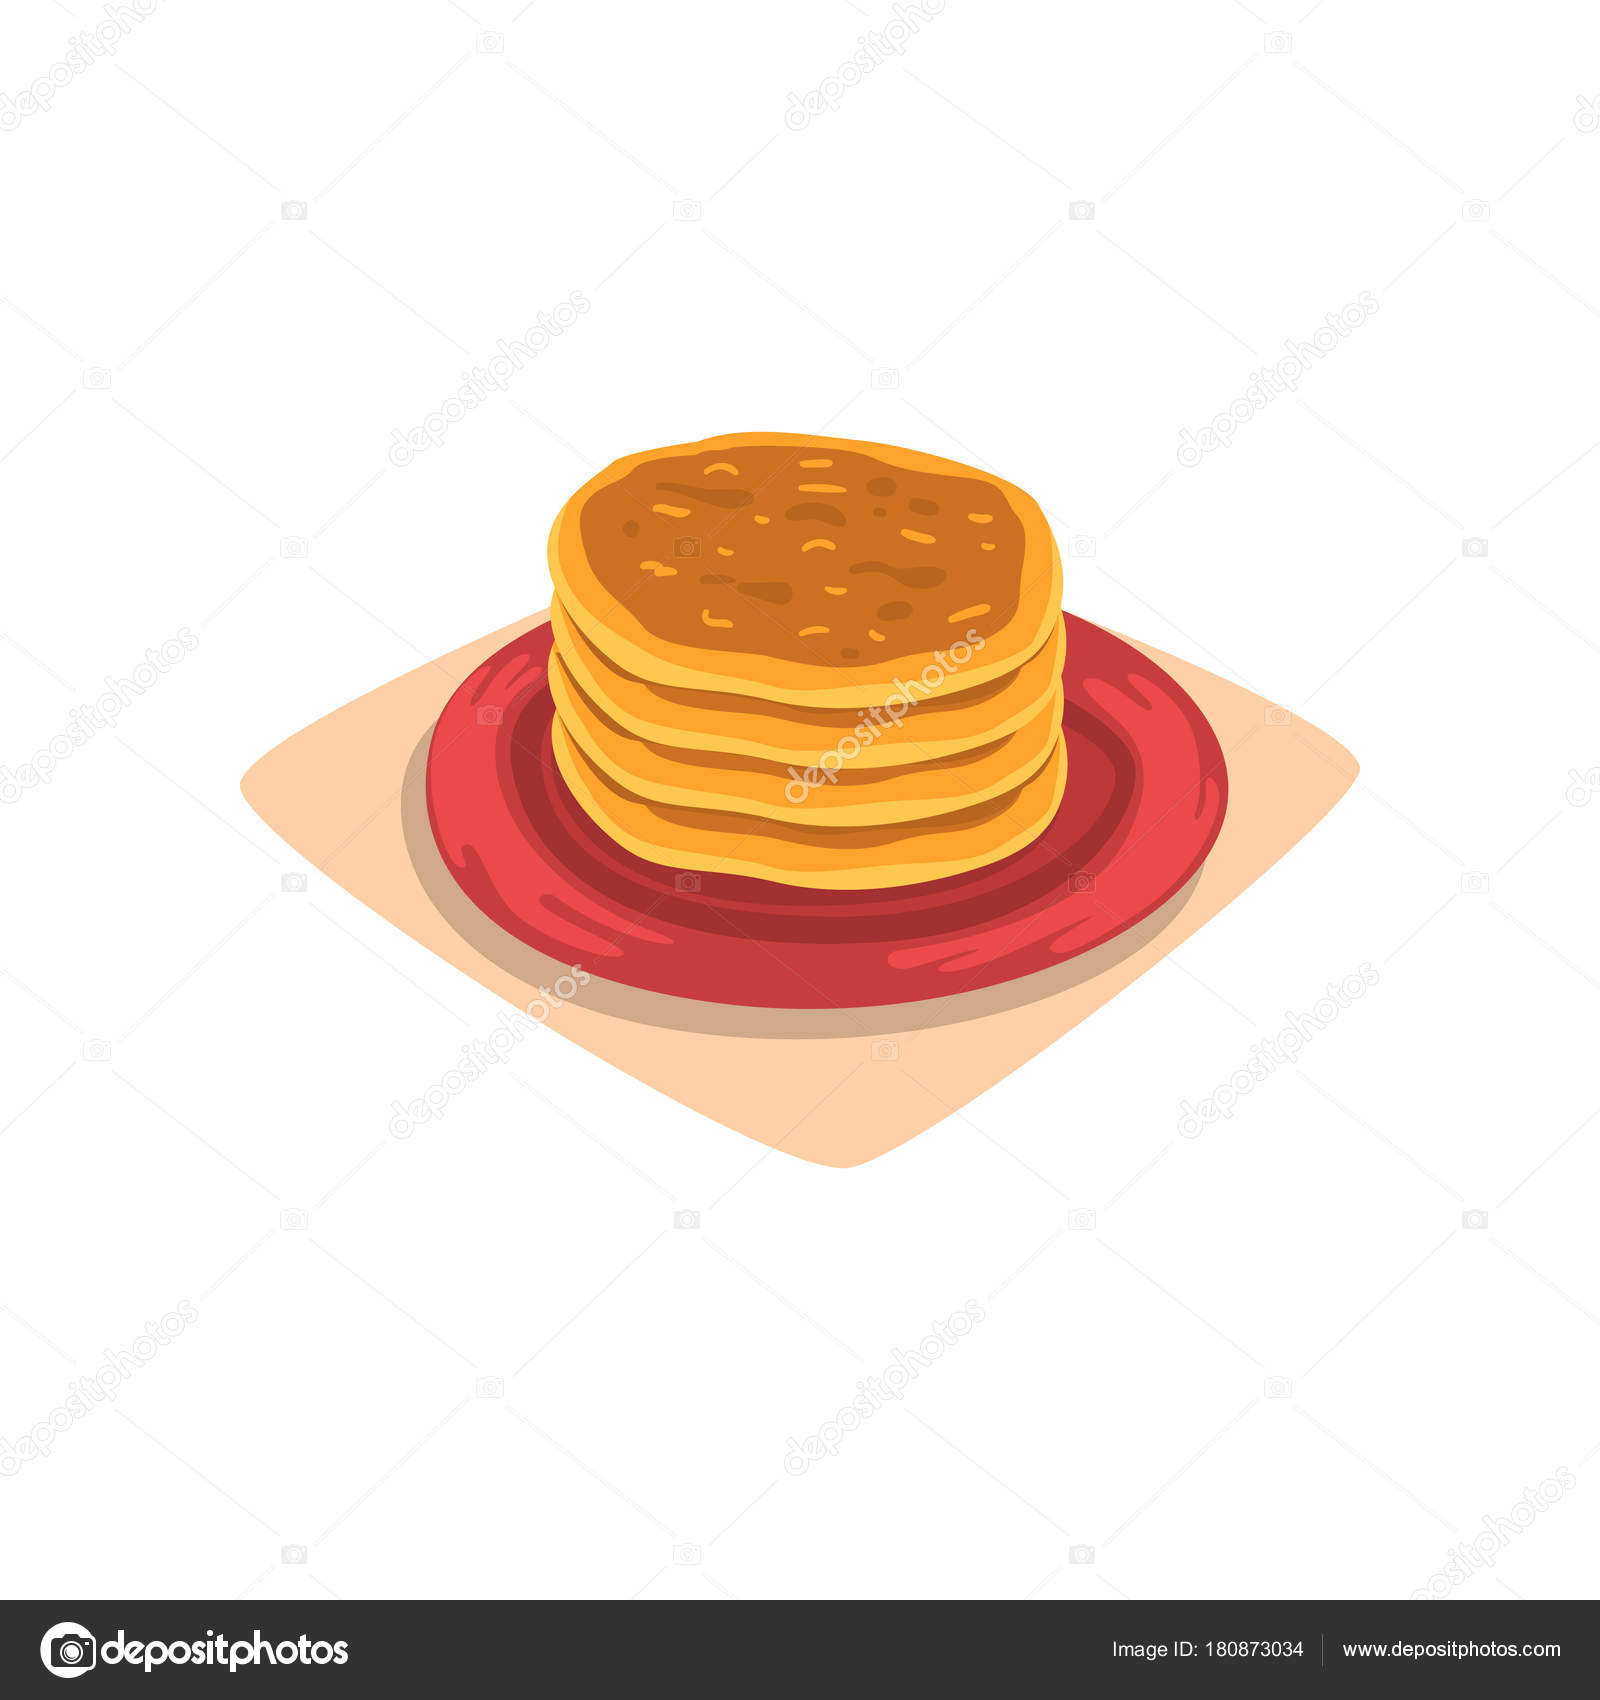 Stack of delicious pancakes on red plate tasty fast food dessert tasty fast food dessert breakfast concept graphic design for menu or recipe book cartoon vector illustration in flat style isolated on white background forumfinder Image collections